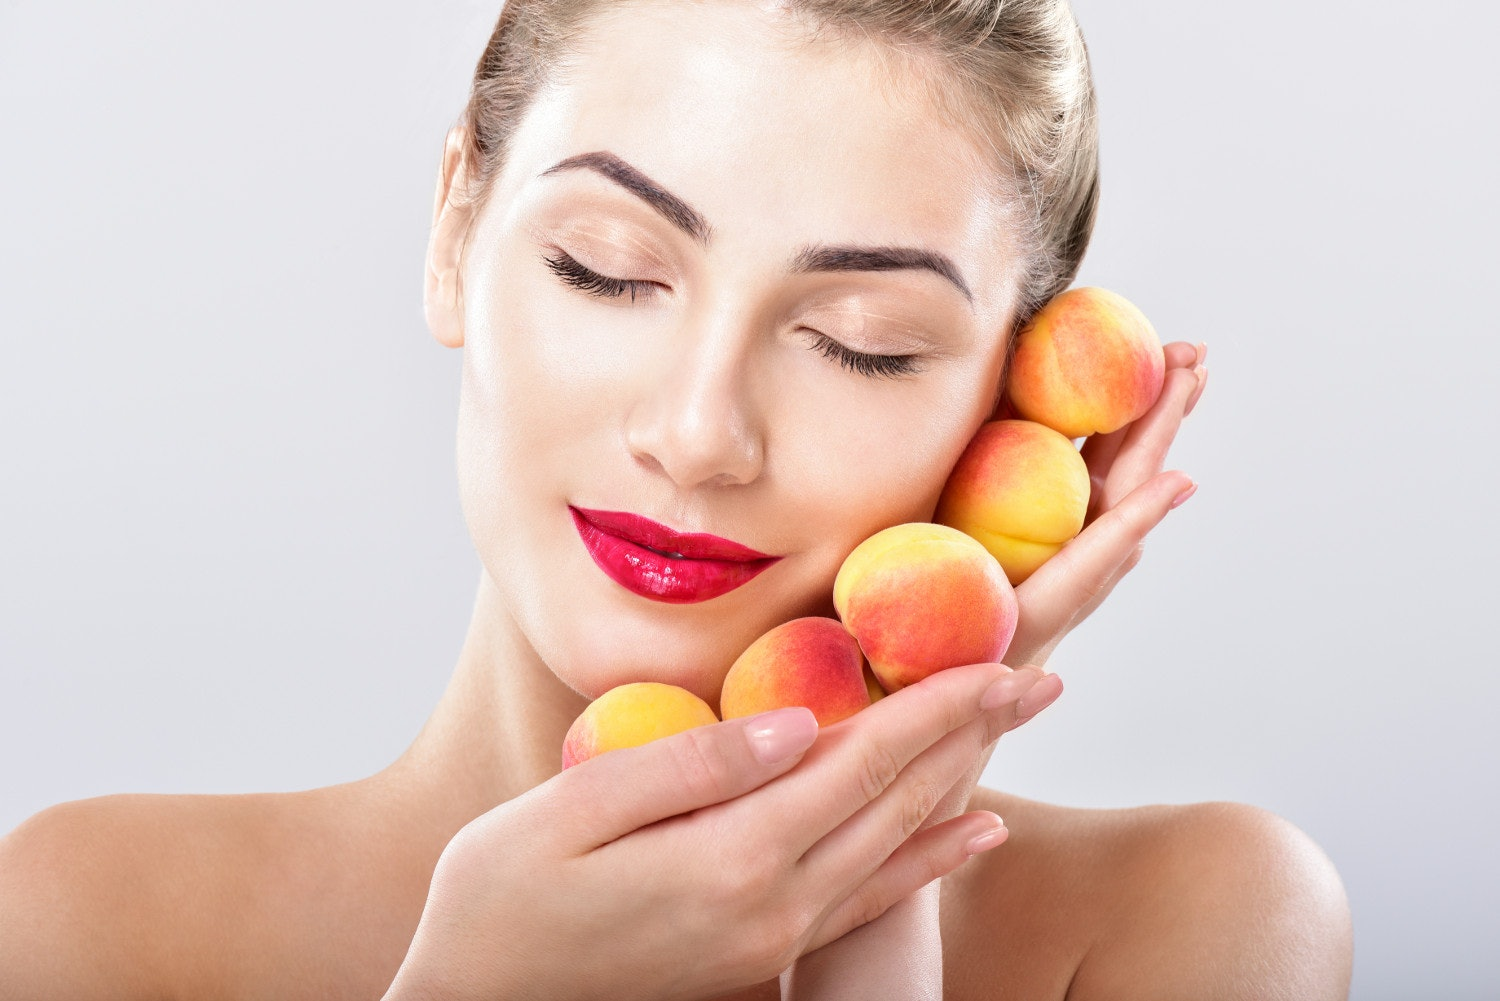 Beautiful woman holding a juicy apricot